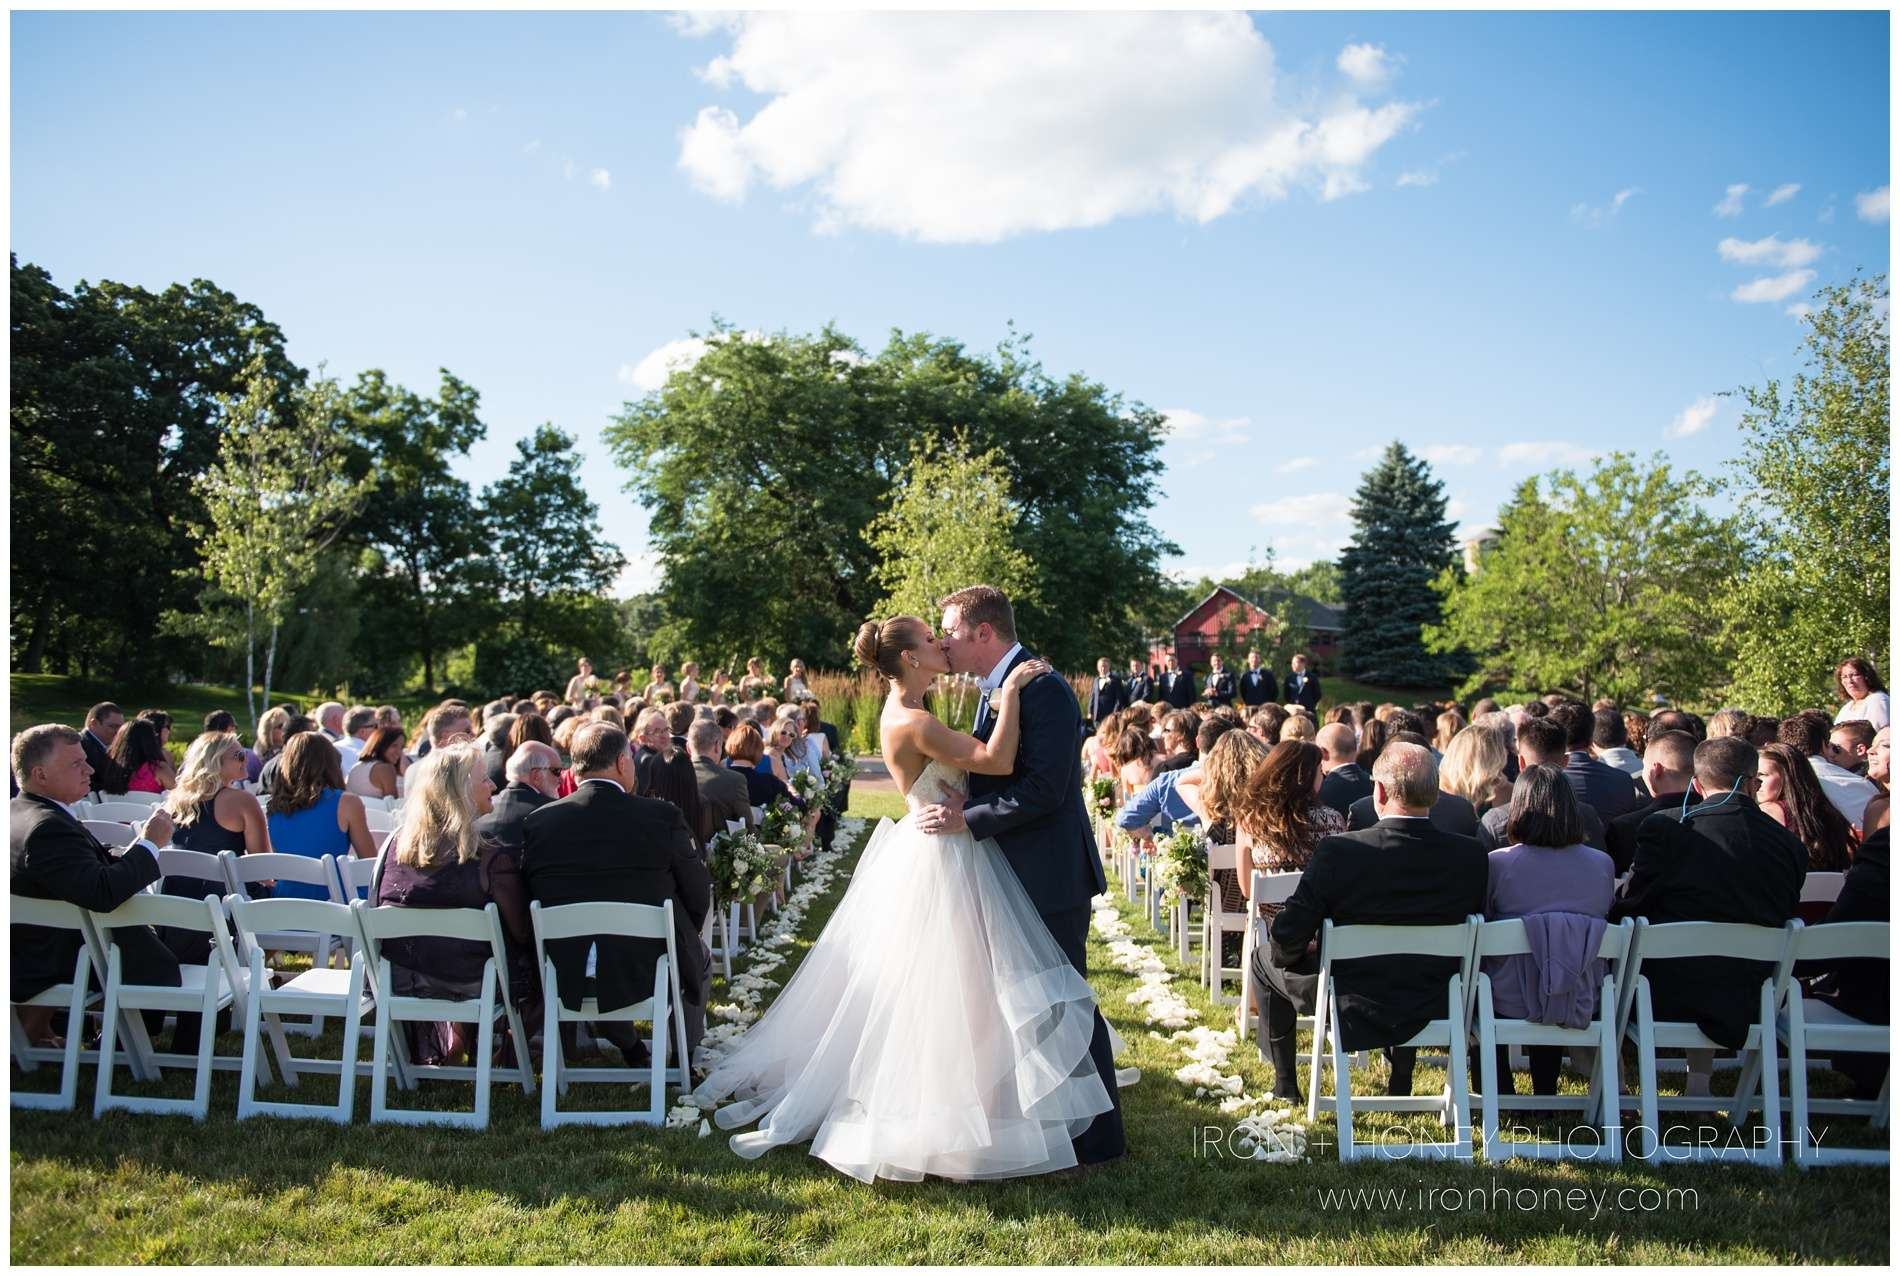 fishermen's inn, elburn, illinois, chicago, wedding photographer, pink wedding dress, barn wedding,